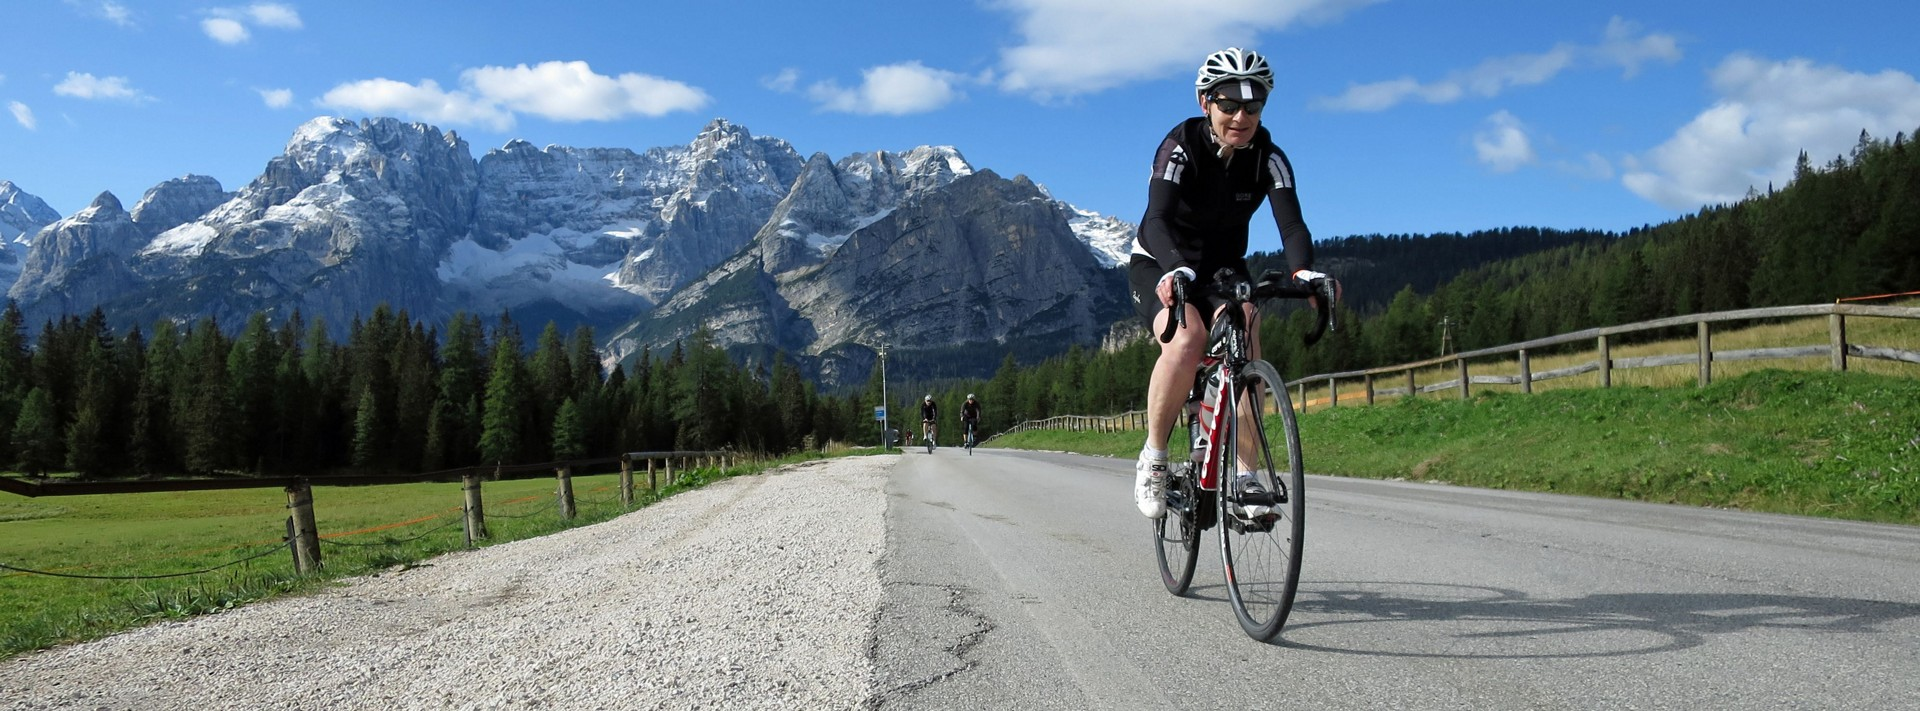 Raid Dolomiti3.jpg - Italy - Dolomites and Alps - Italia Road Cycling